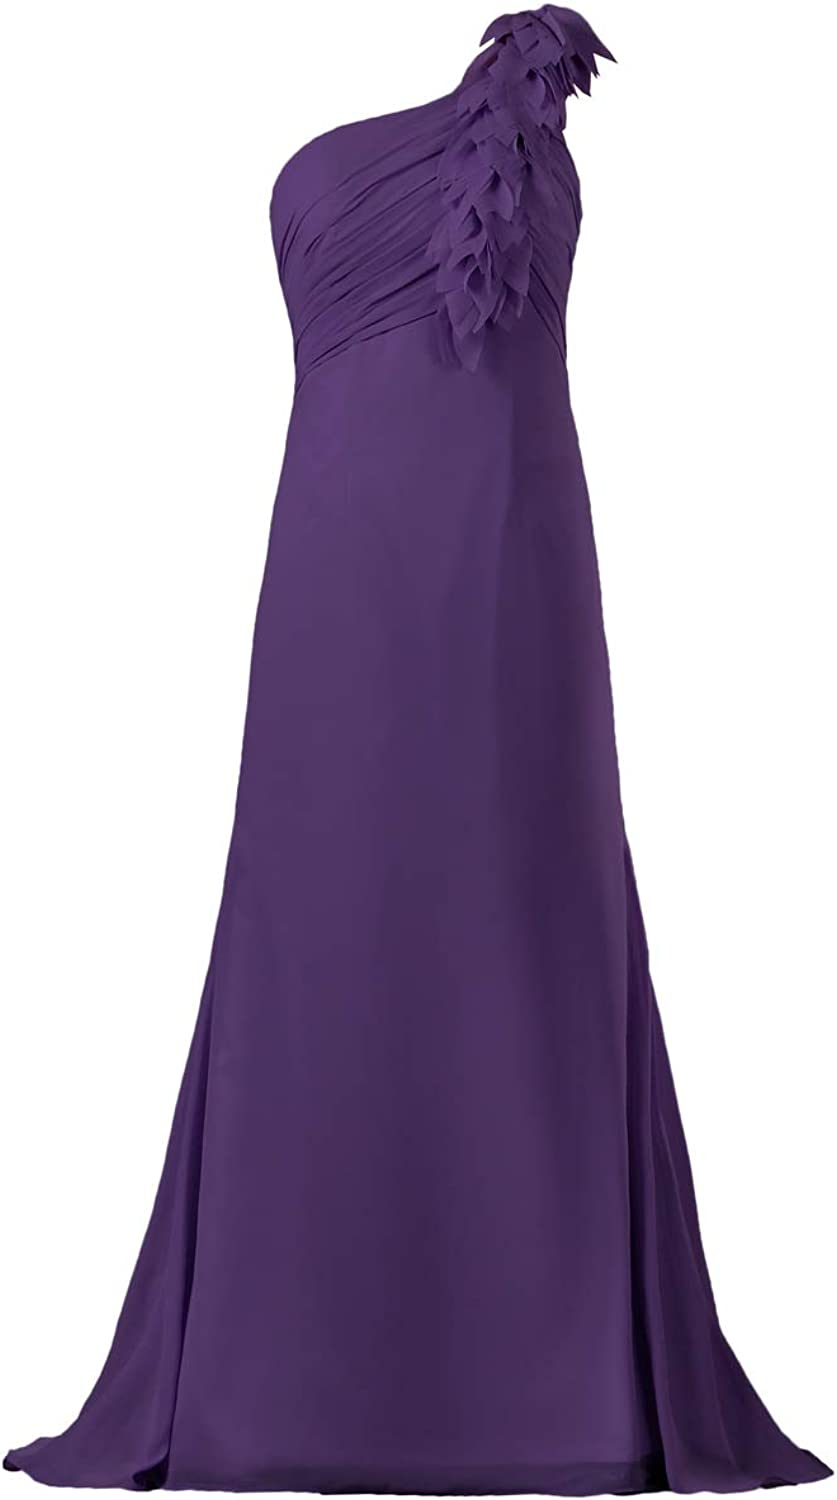 ANTS Women's One Shoulder Flower Long Bridesmaid Dress Gown